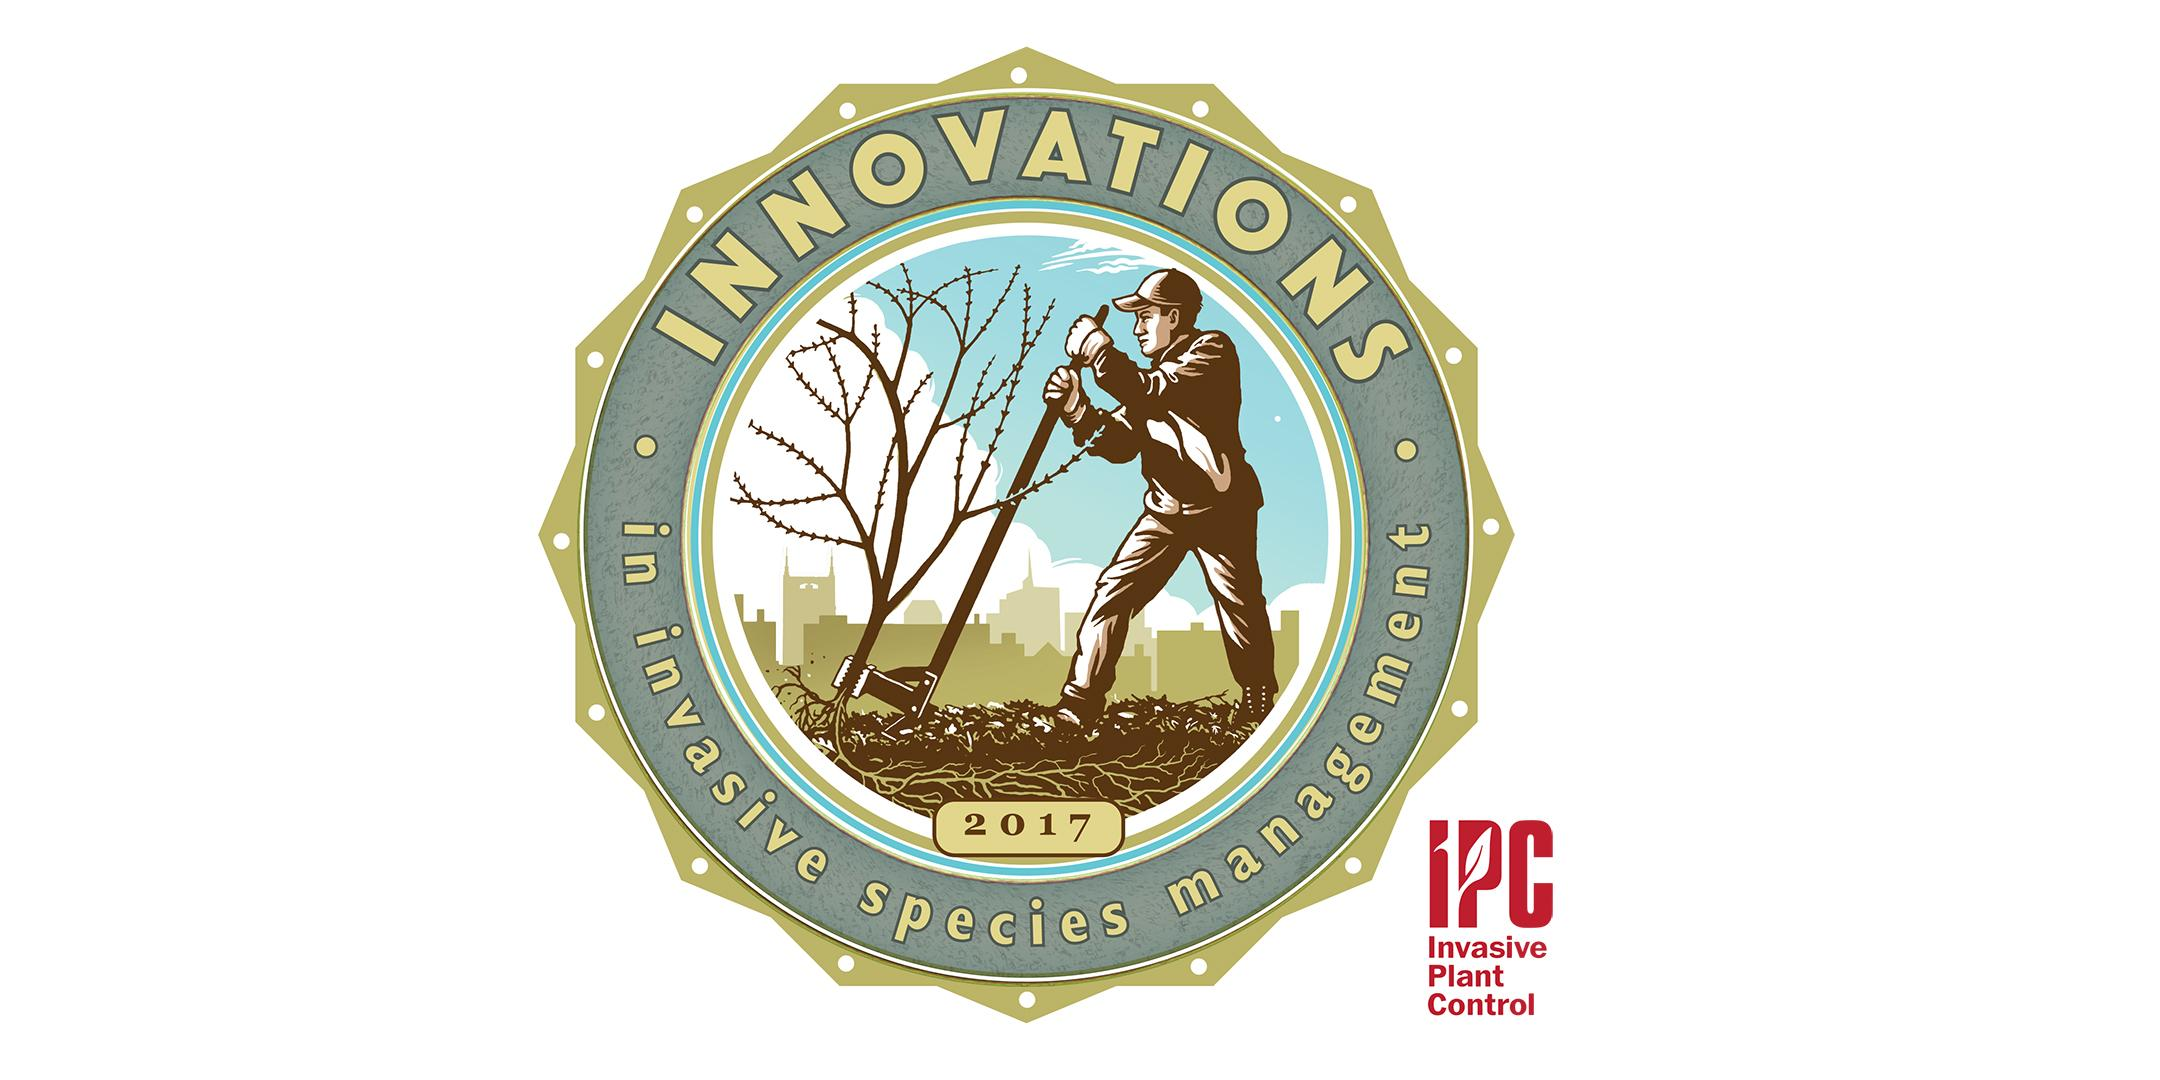 innovations-invasive-species-management-